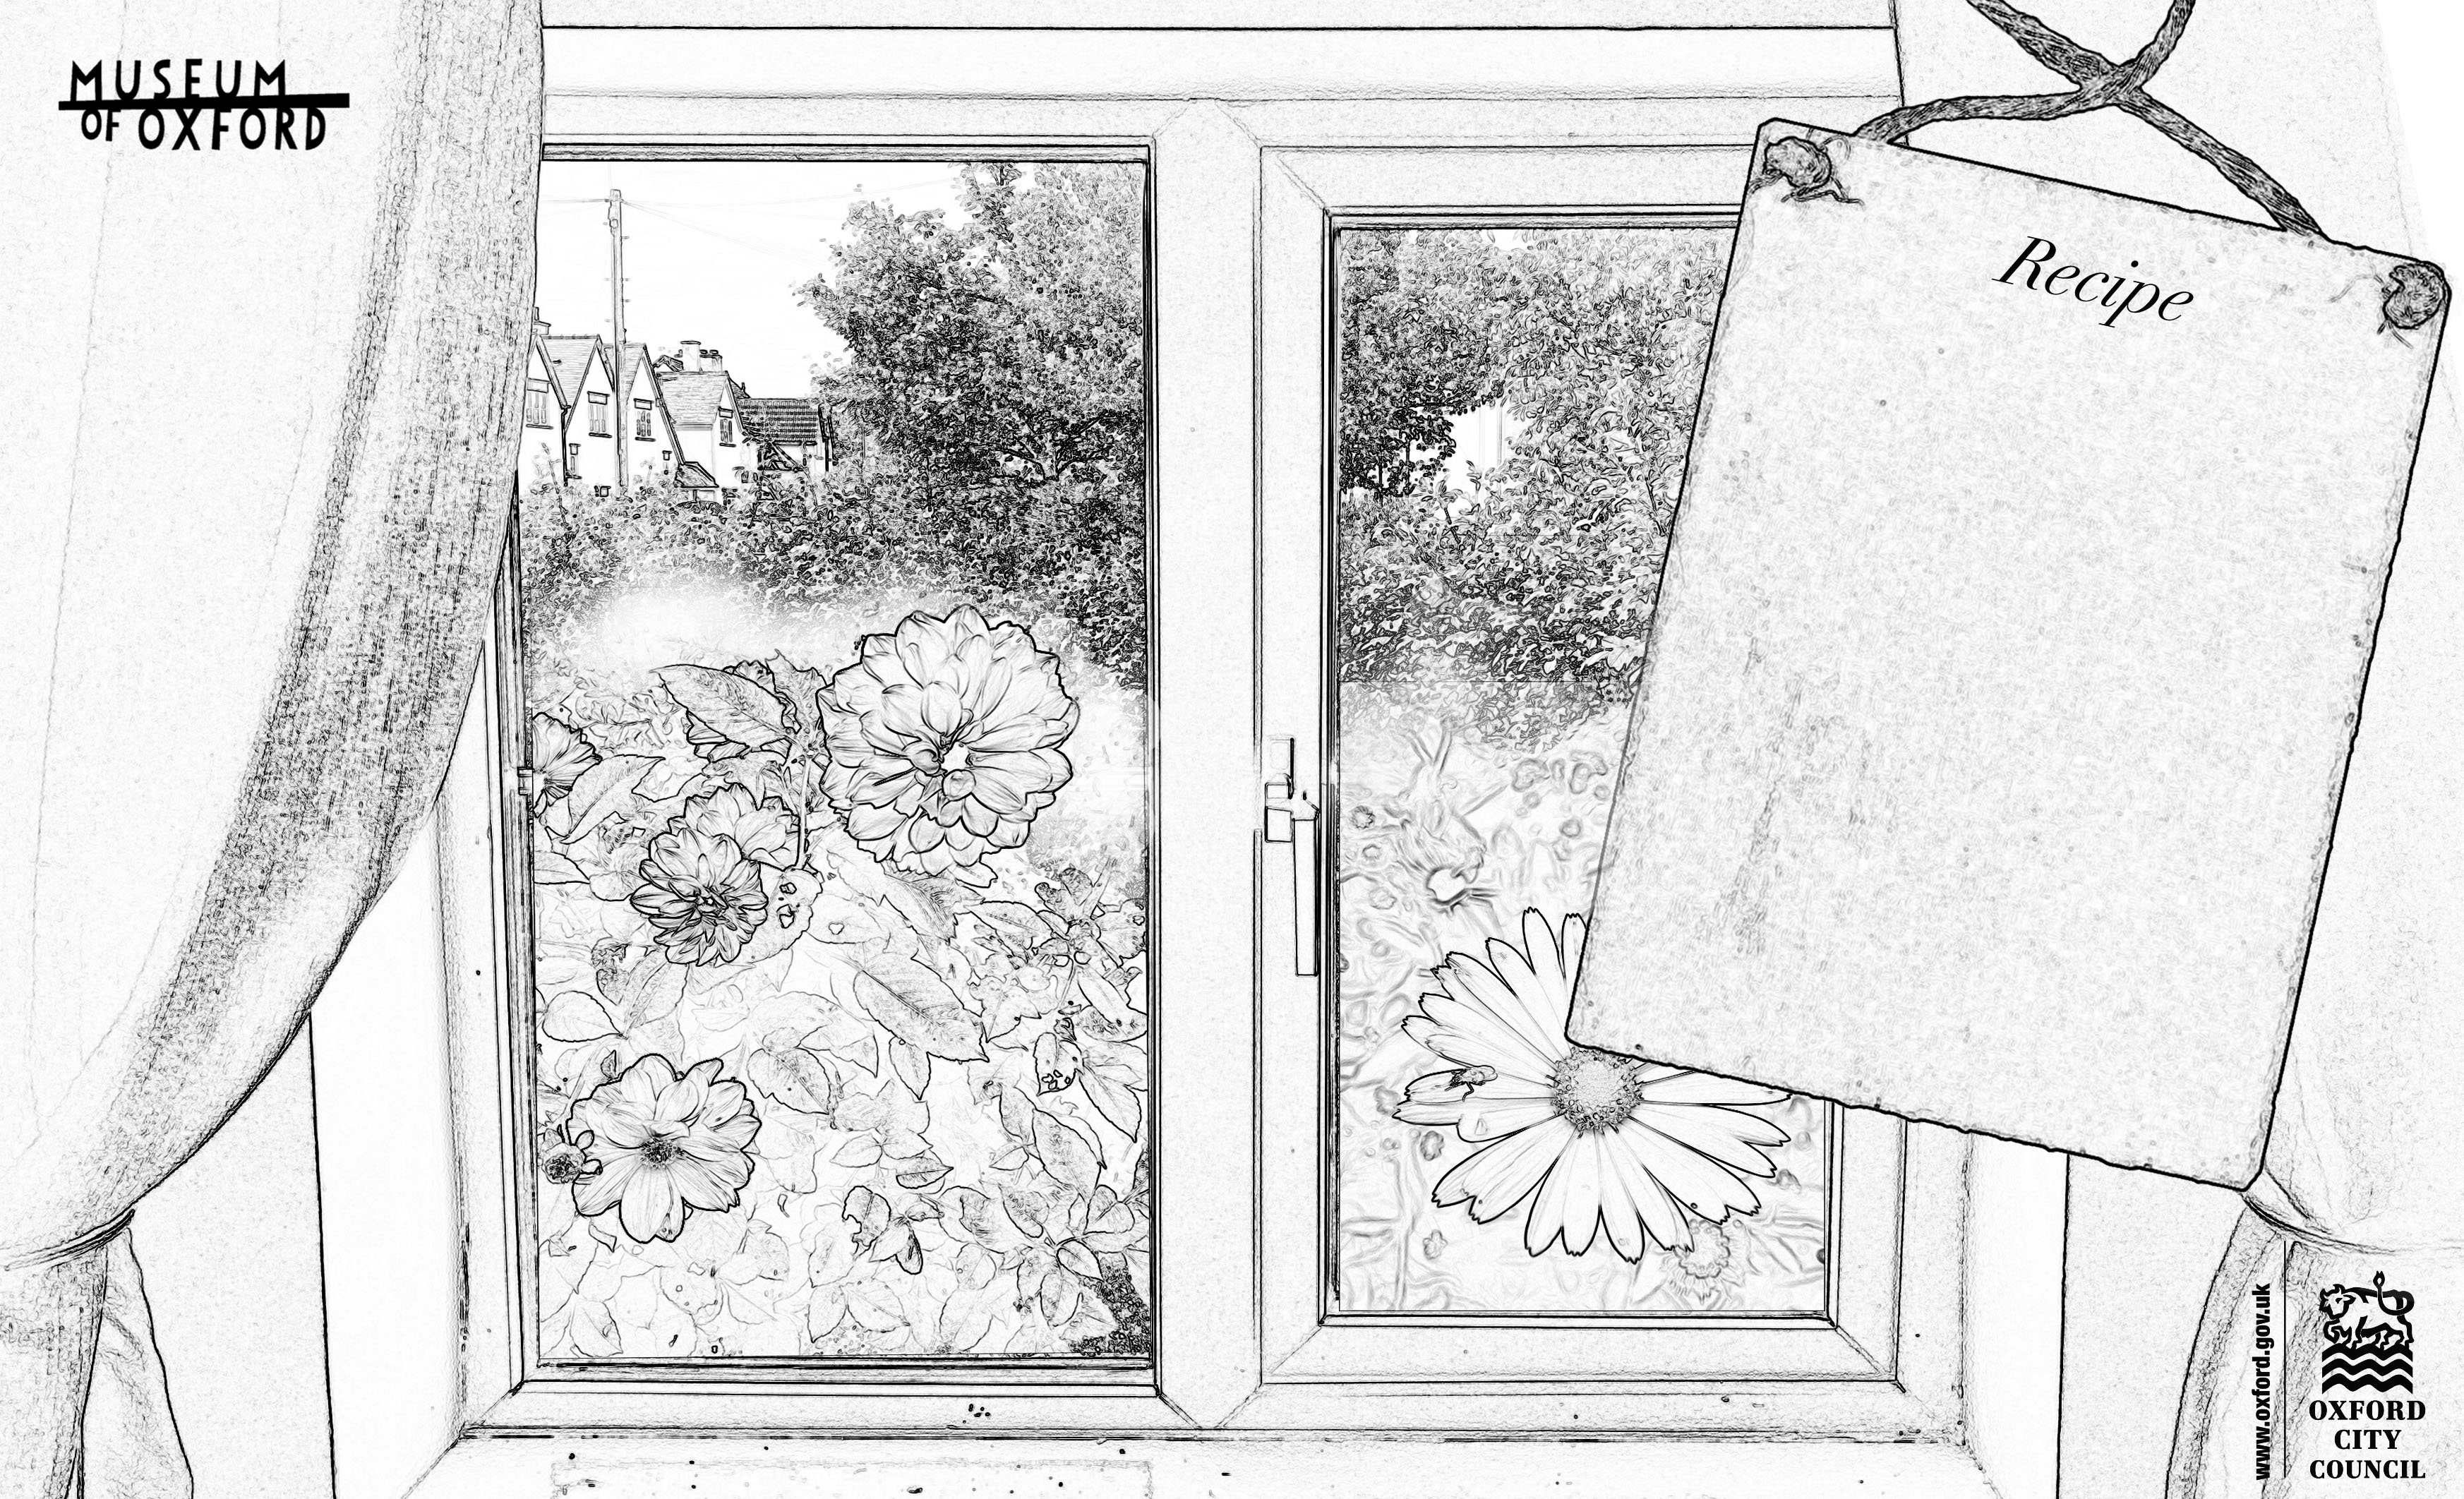 A drawing of a window used for a museum activity